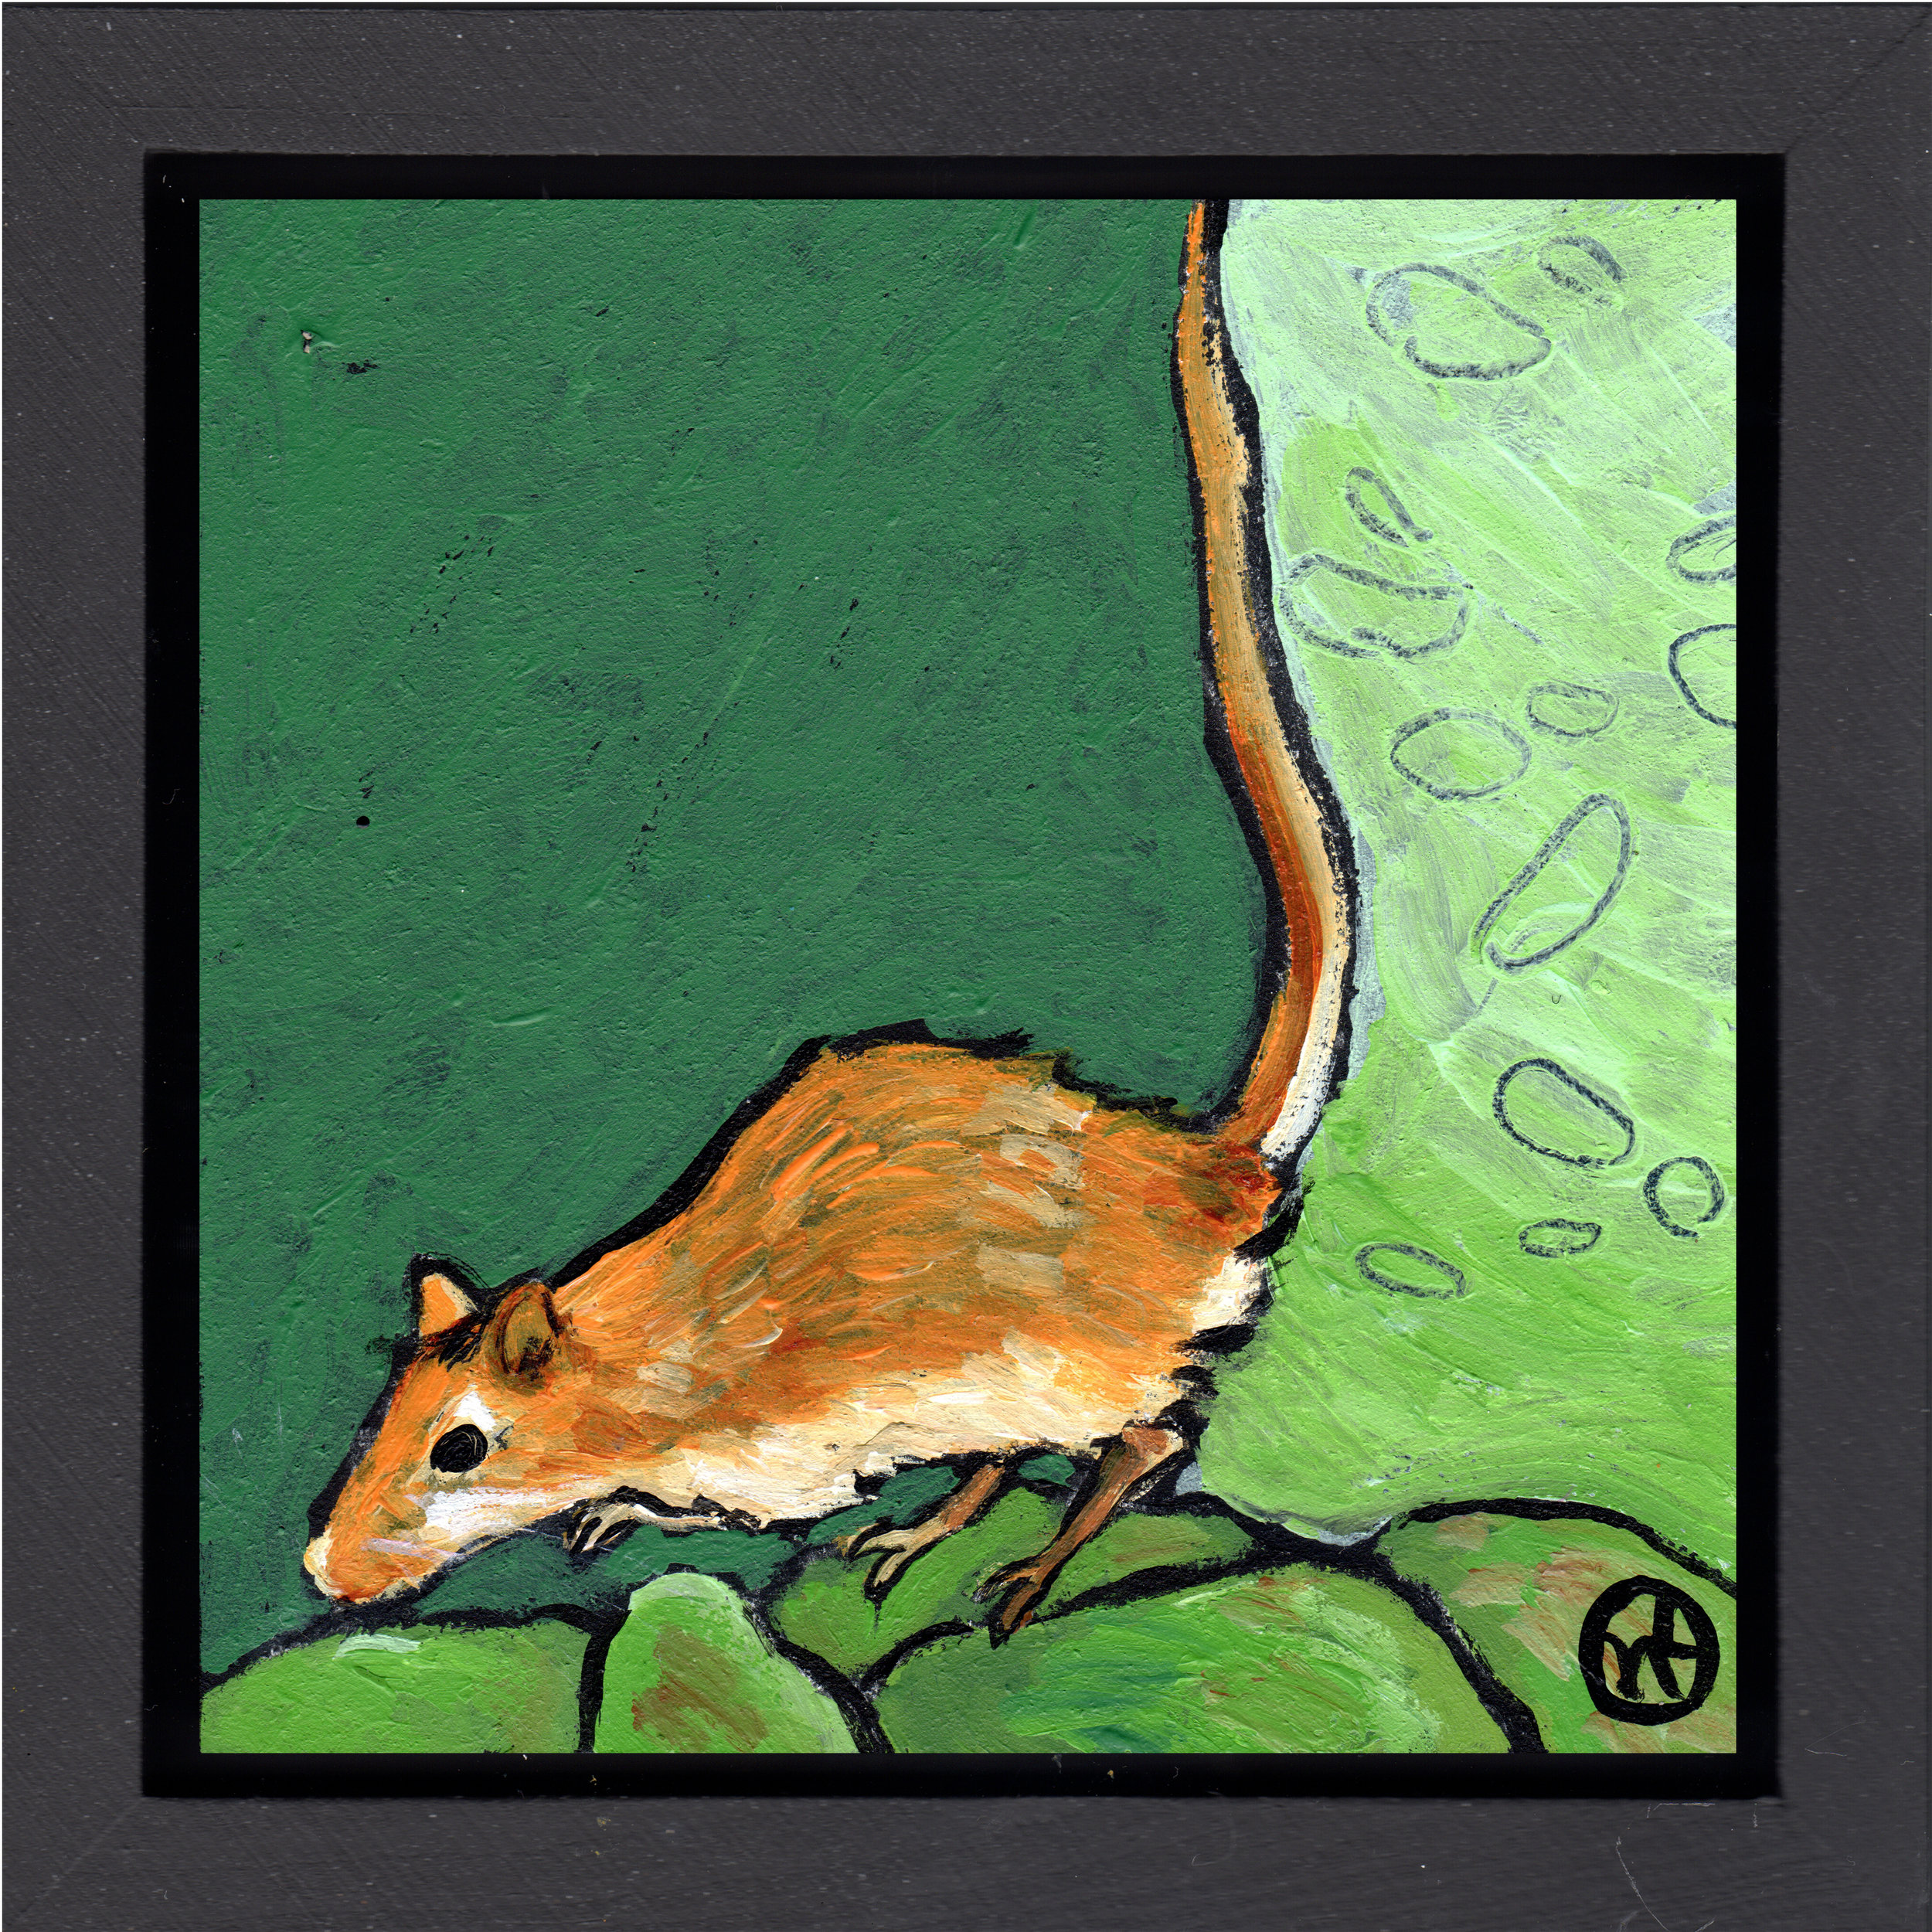 """acrylic on wood, 6.5"""" x 6.5"""" (including frame),  wood frame is 1.5 inches deep and made locally  sold"""